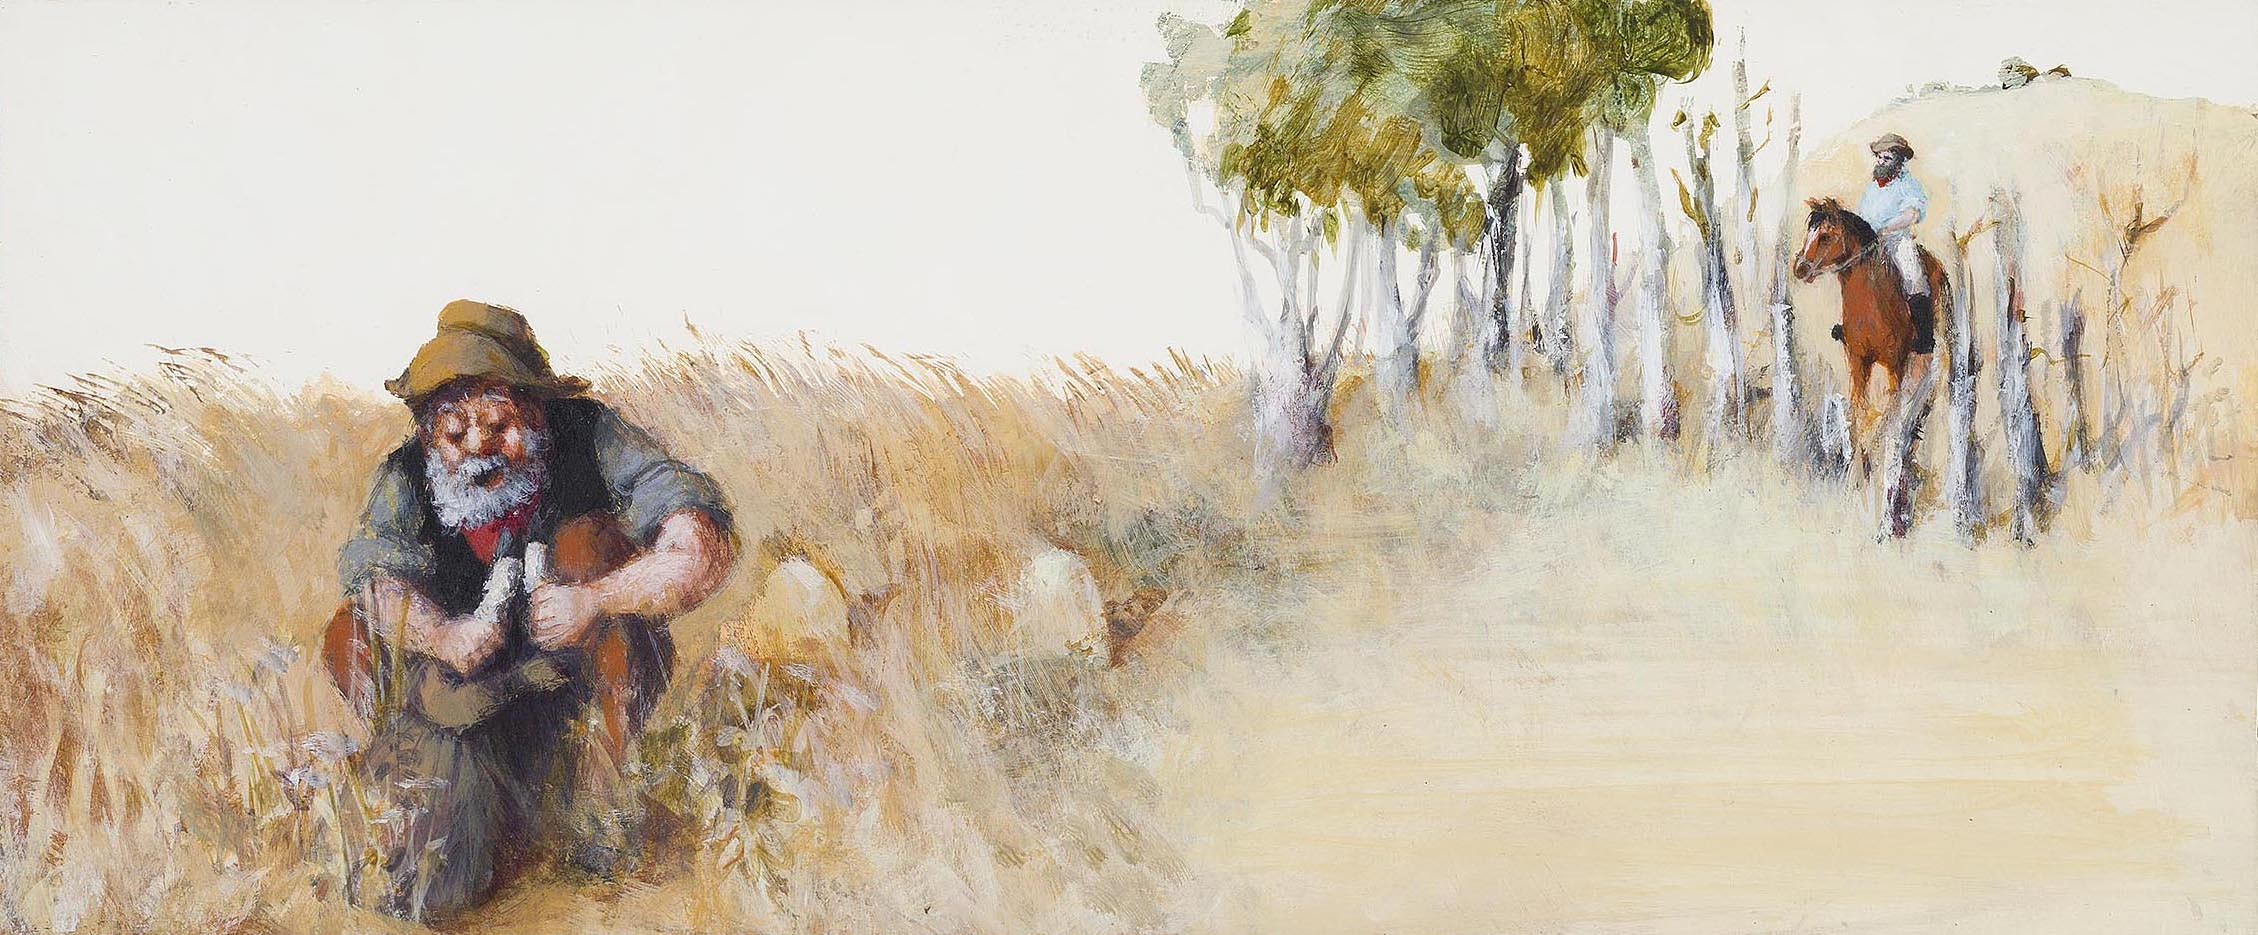 A man crouches in the midst of tall grass.